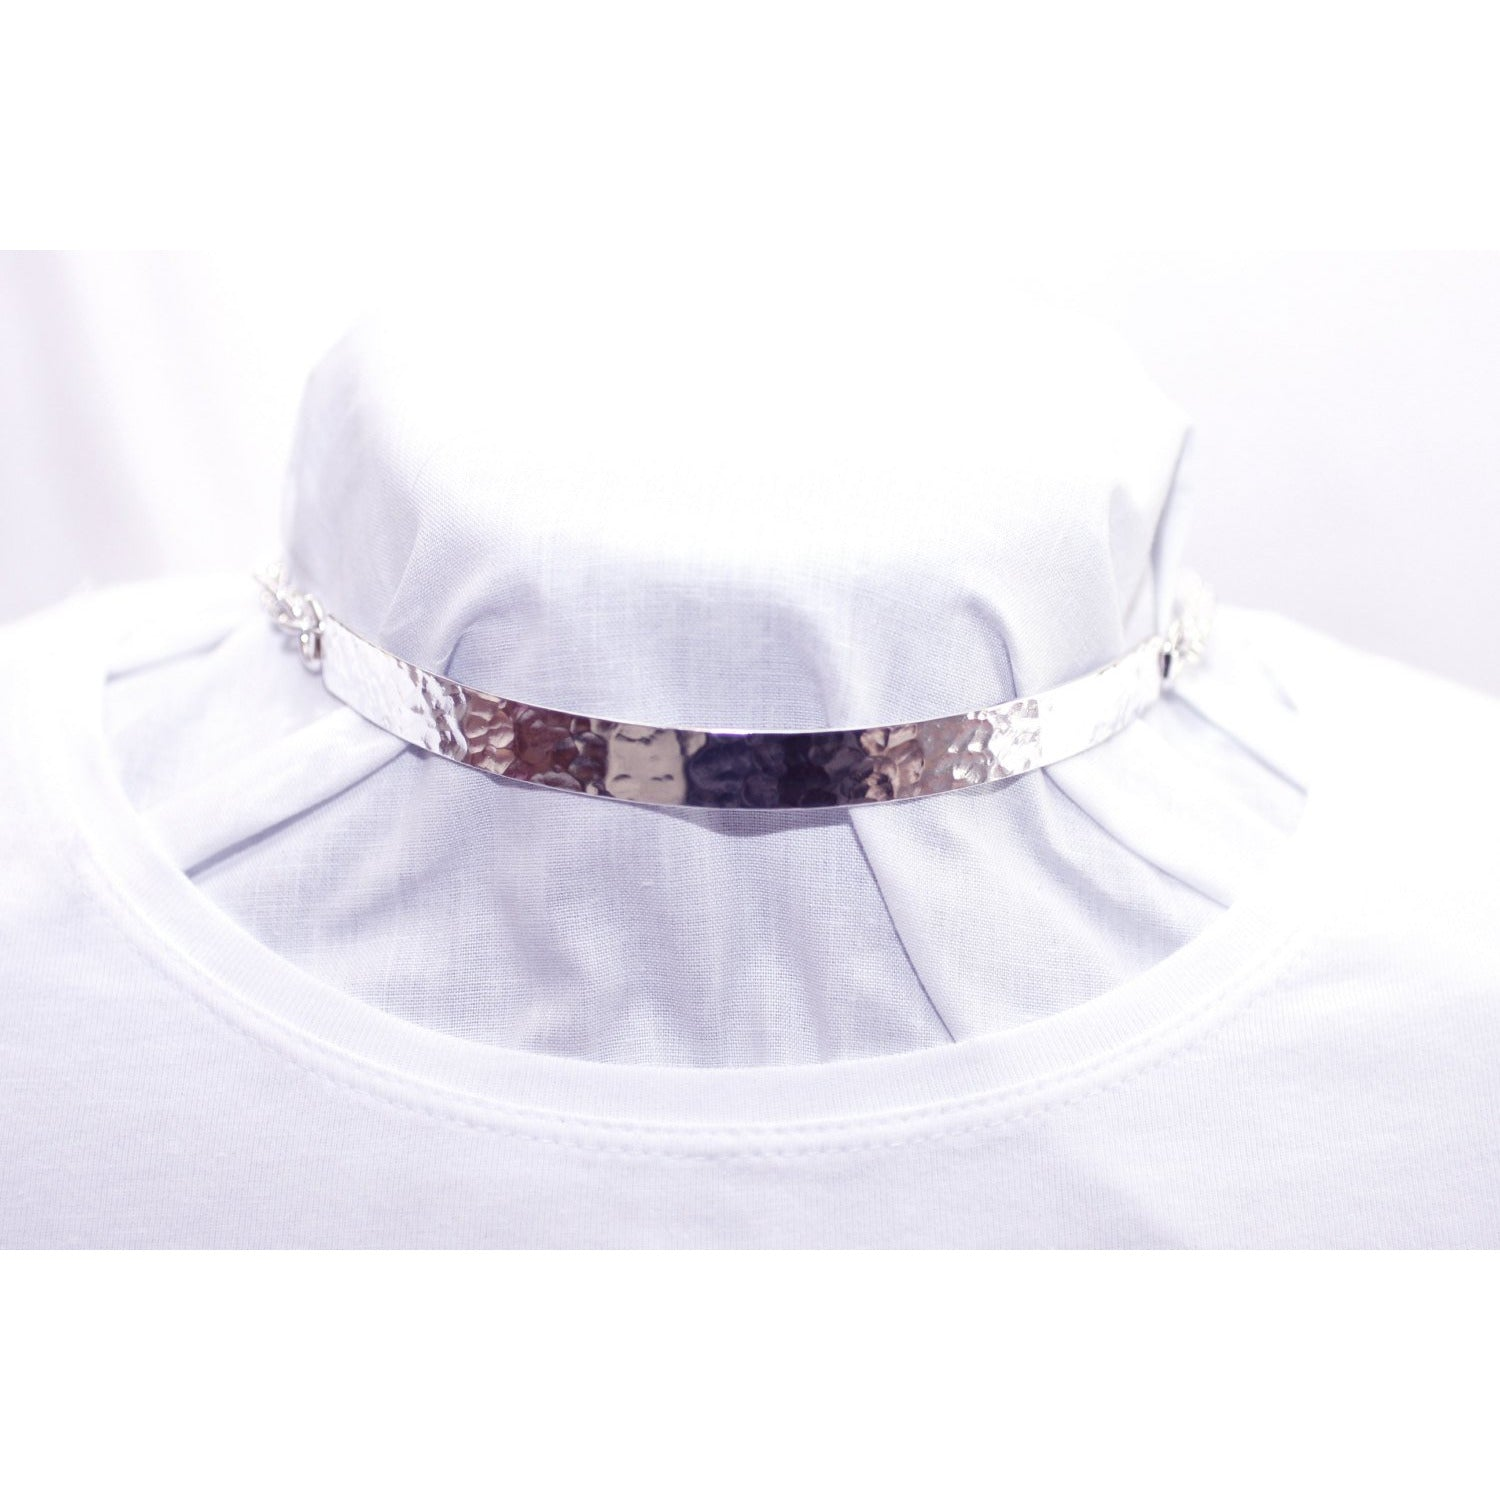 Sterling Silver-10mm, Wide-Hammered Effect Choker – Day-Collar-Bondage / BDSM Collar-Half Solid/Half Chain.